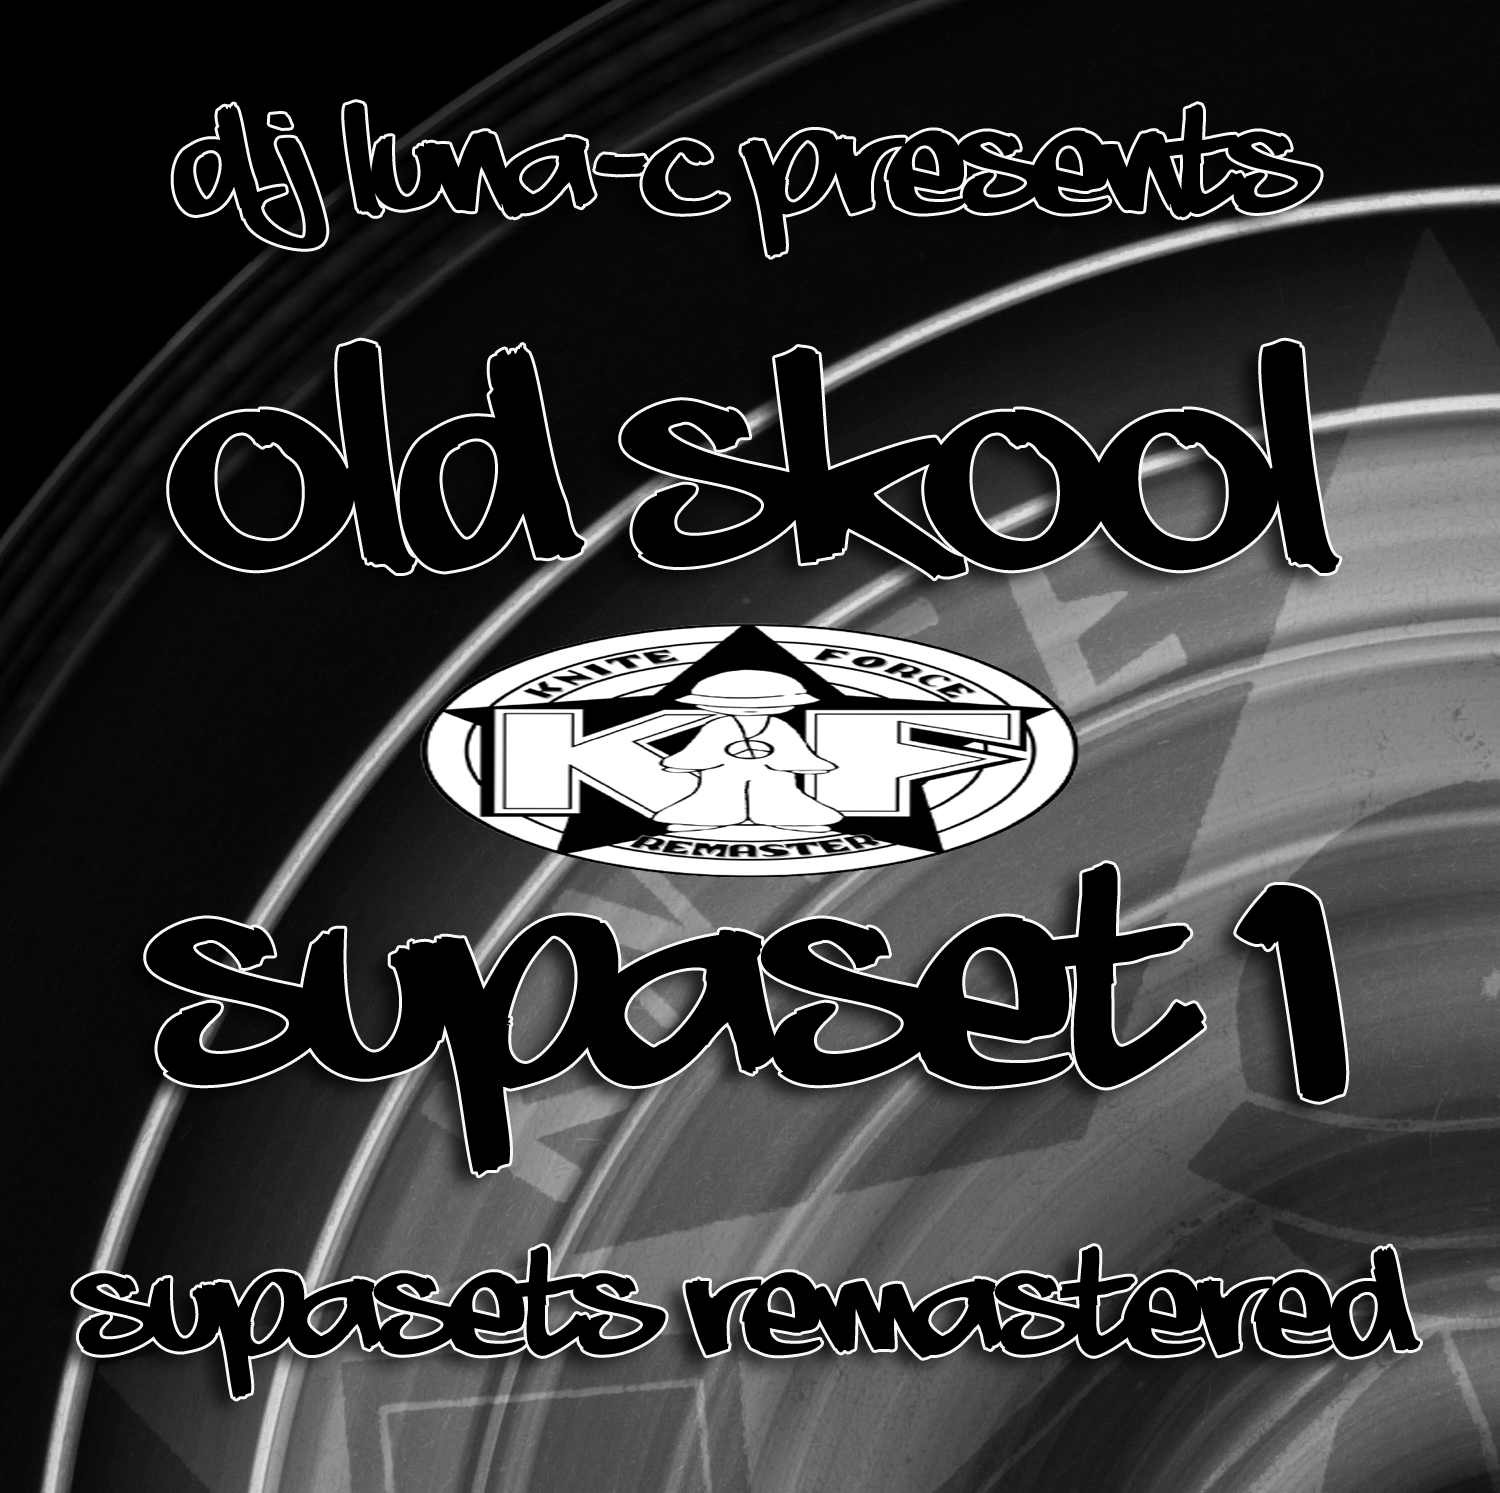 [KFSSOS01] Luna-C - Old Skool Supaset Part One (Digital Only)